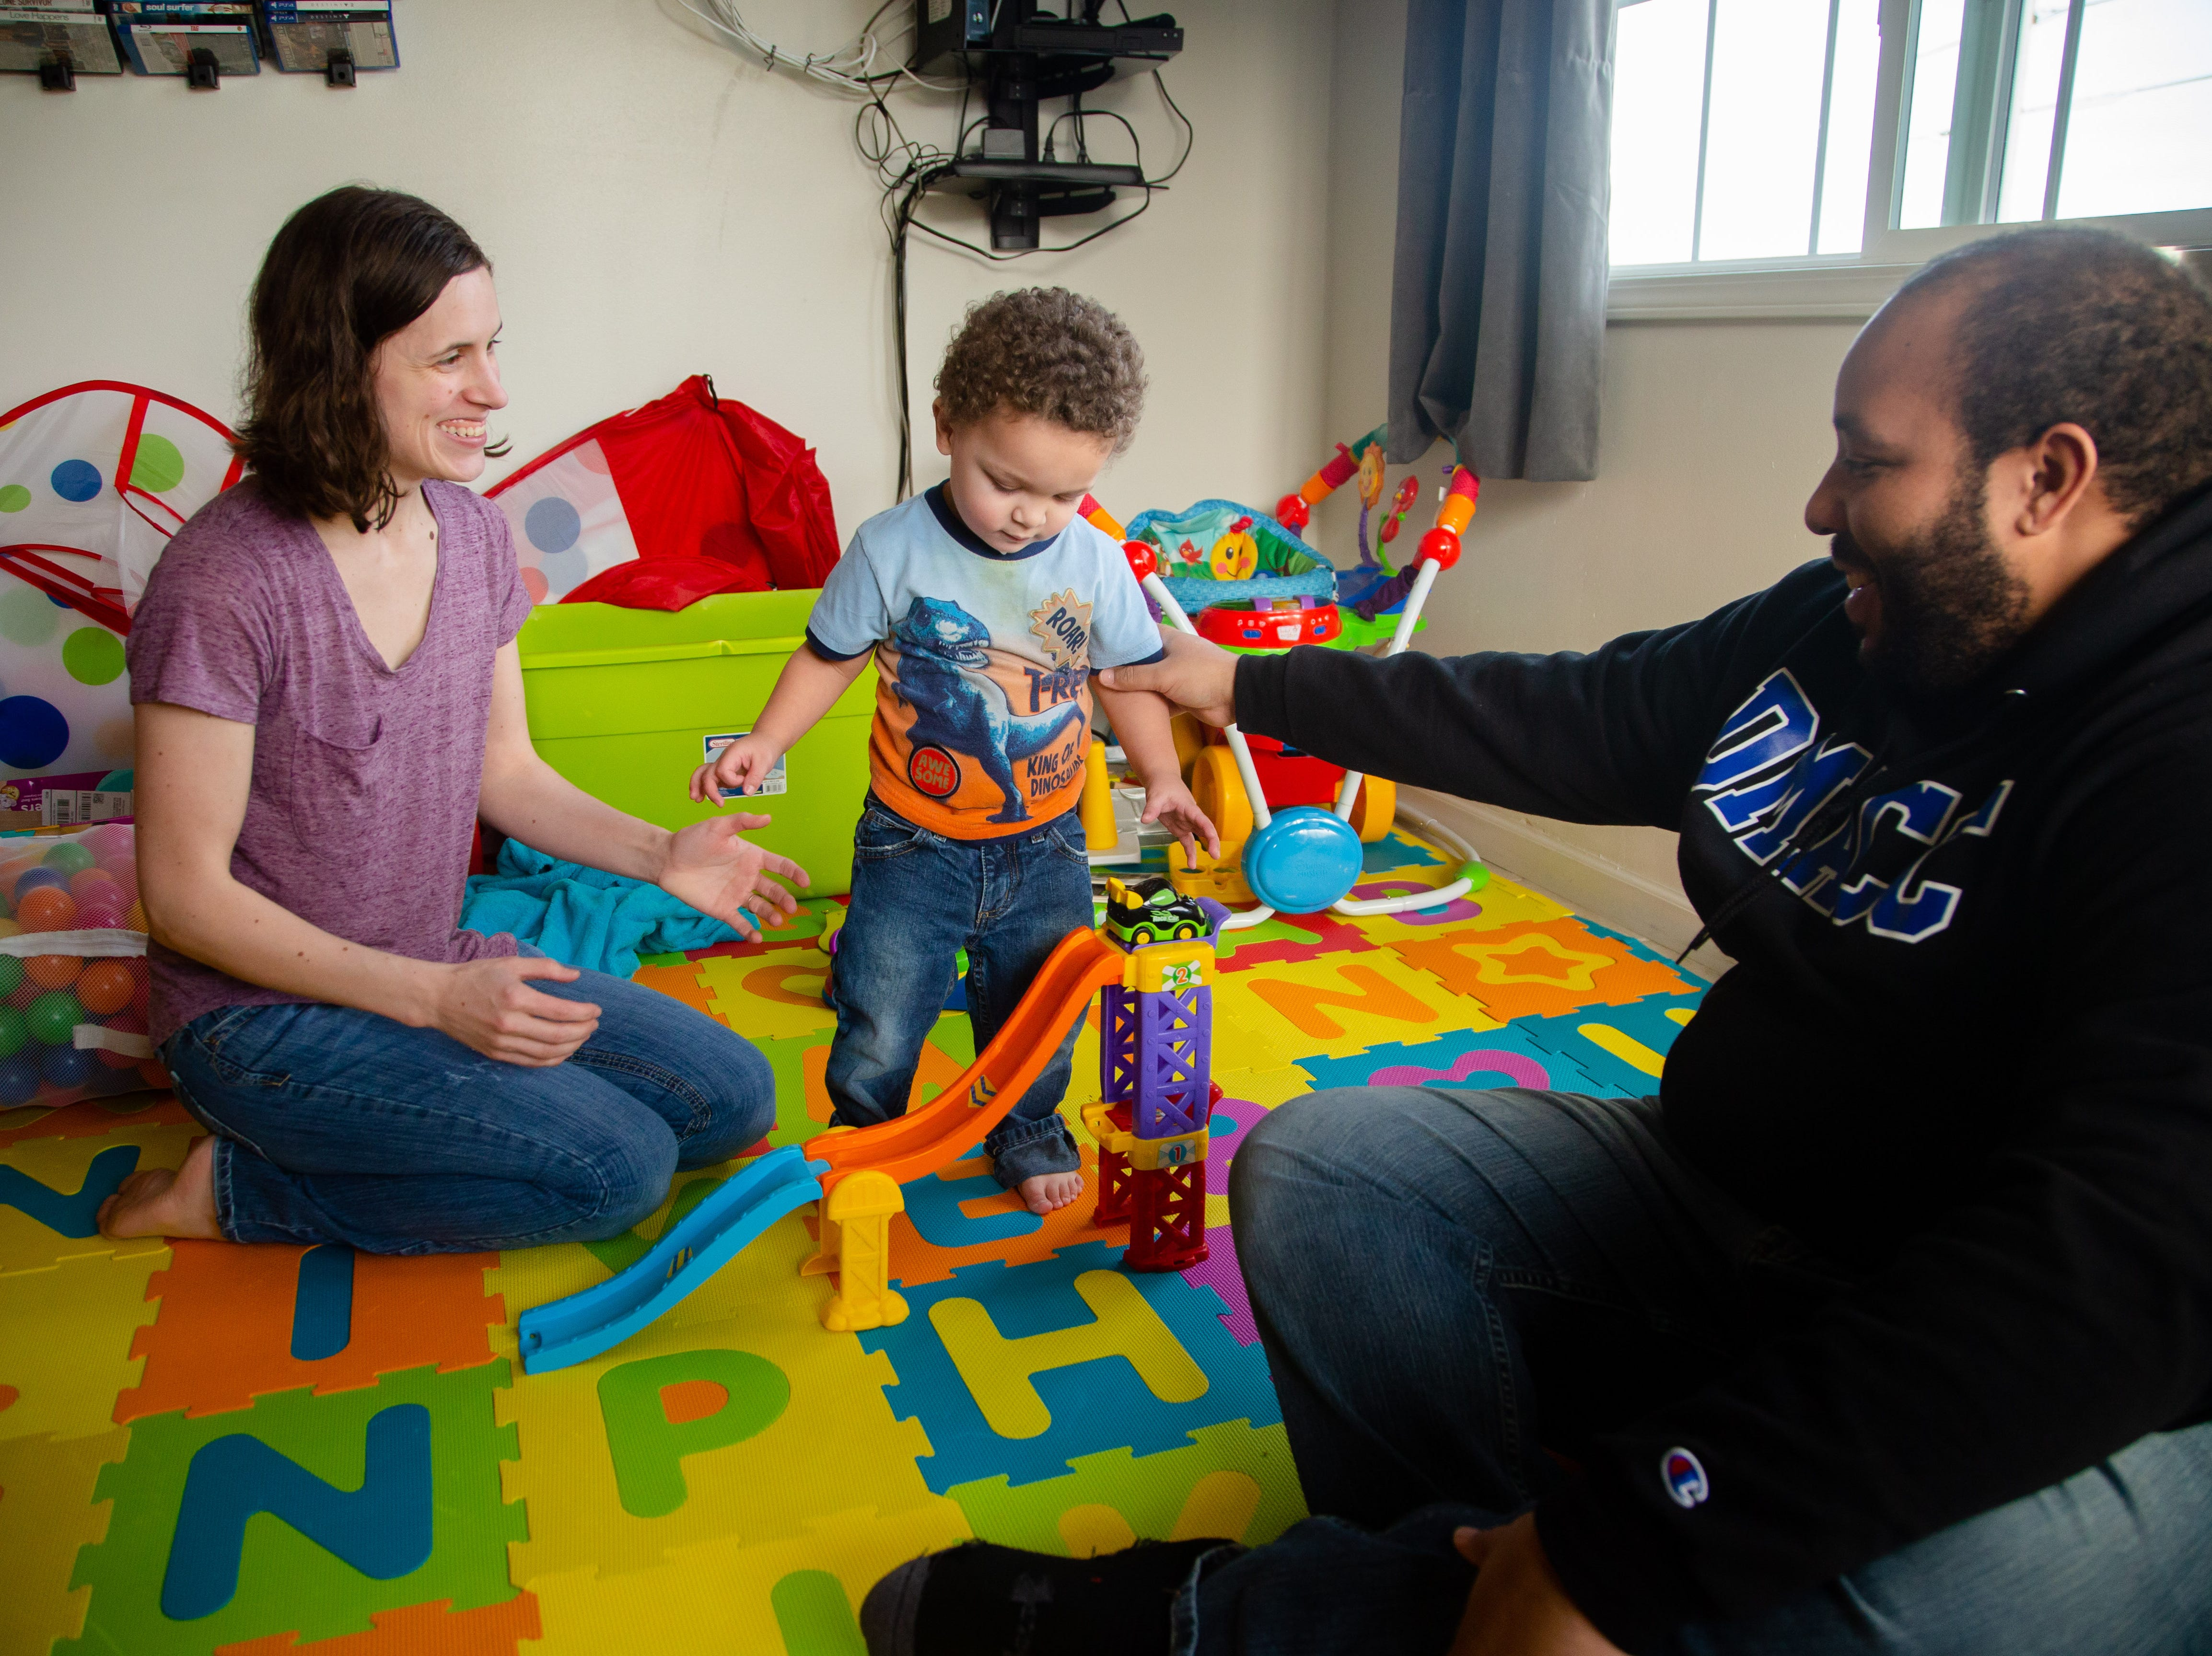 Andrea and Maurice McFalls play with their son Oliver McFalls at their Des Moines apartment Tuesday, Dec. 11, 2018.